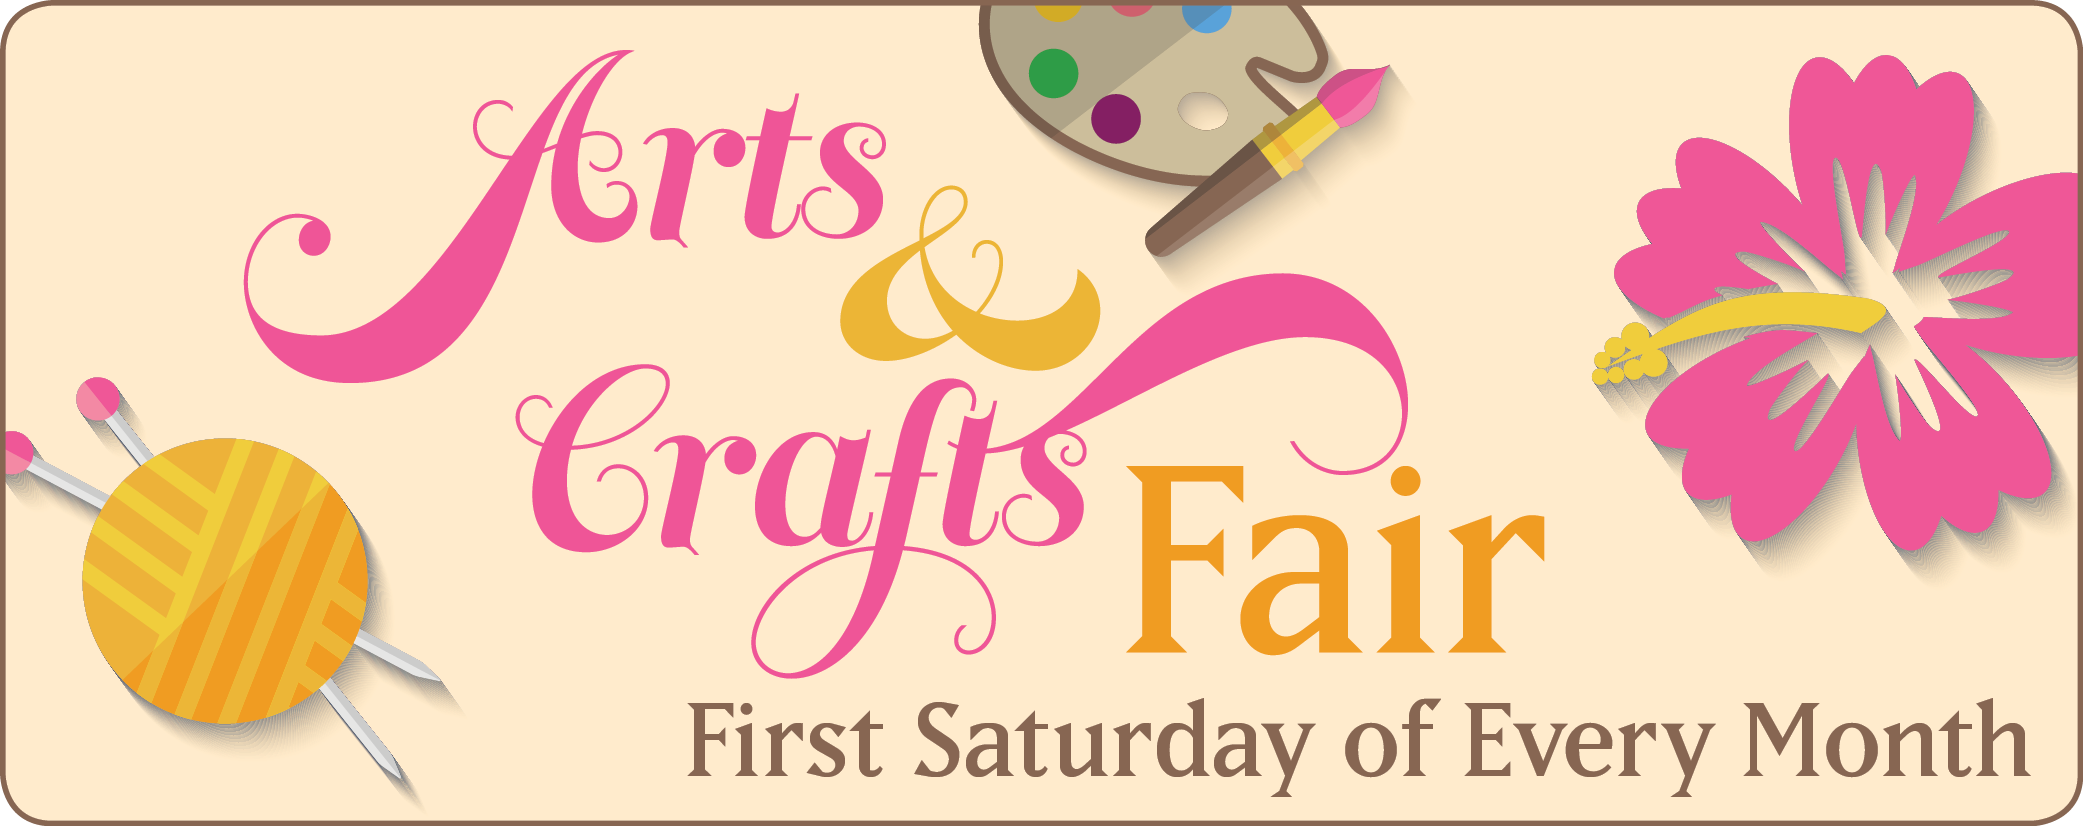 """Art with painting palette, pink hibiscus, knitting needles and yarn. Type: """"Arts & Crafts Fair, First Saturday of Every Month"""""""